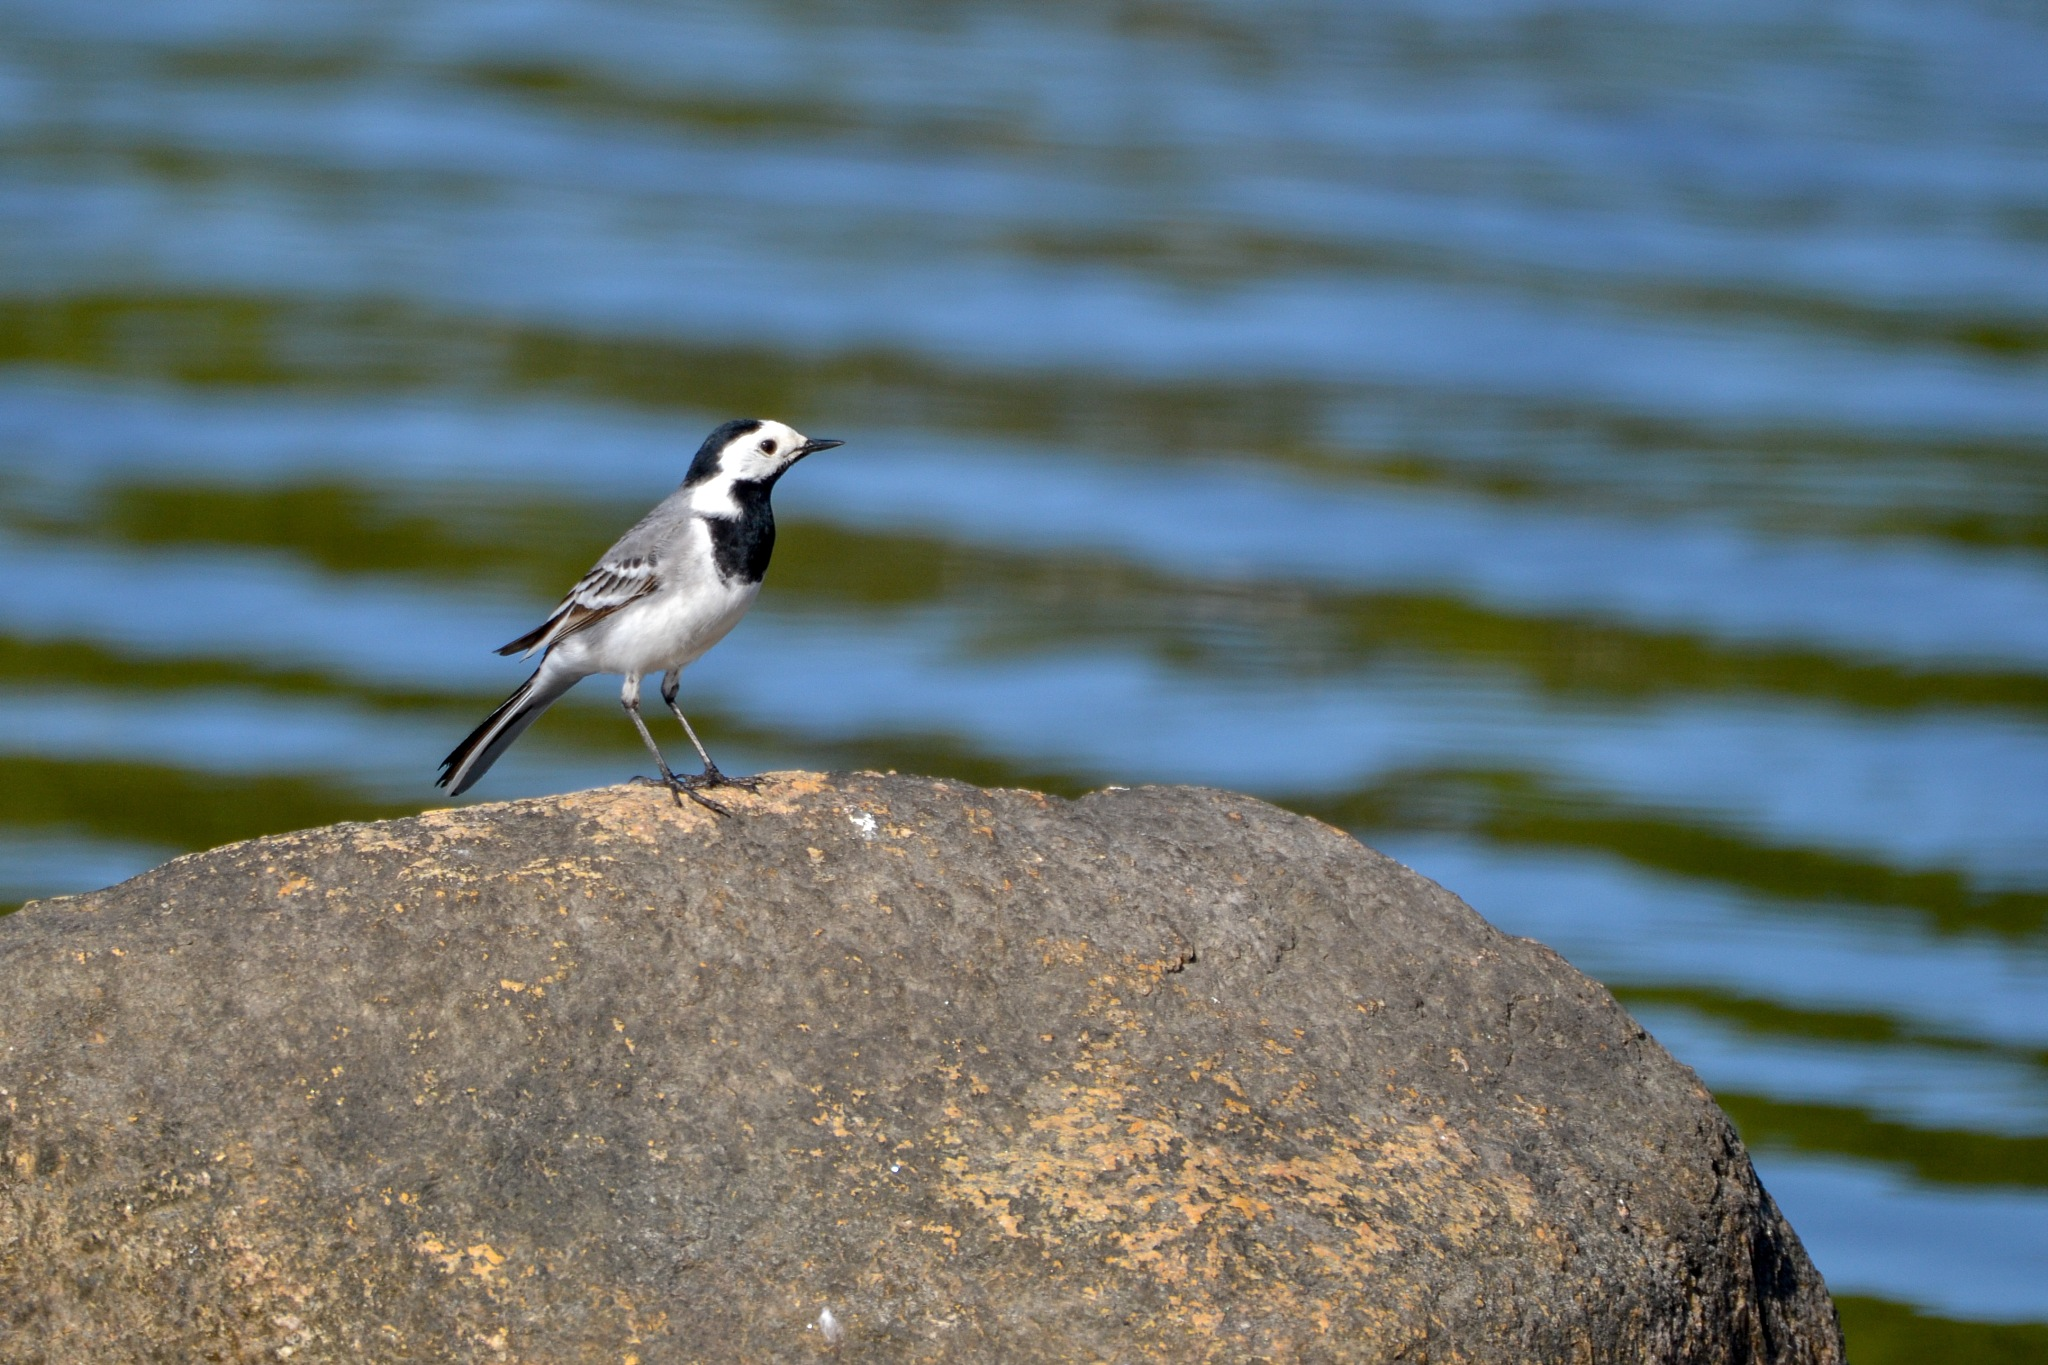 Wagtails by monica.westerholm.5